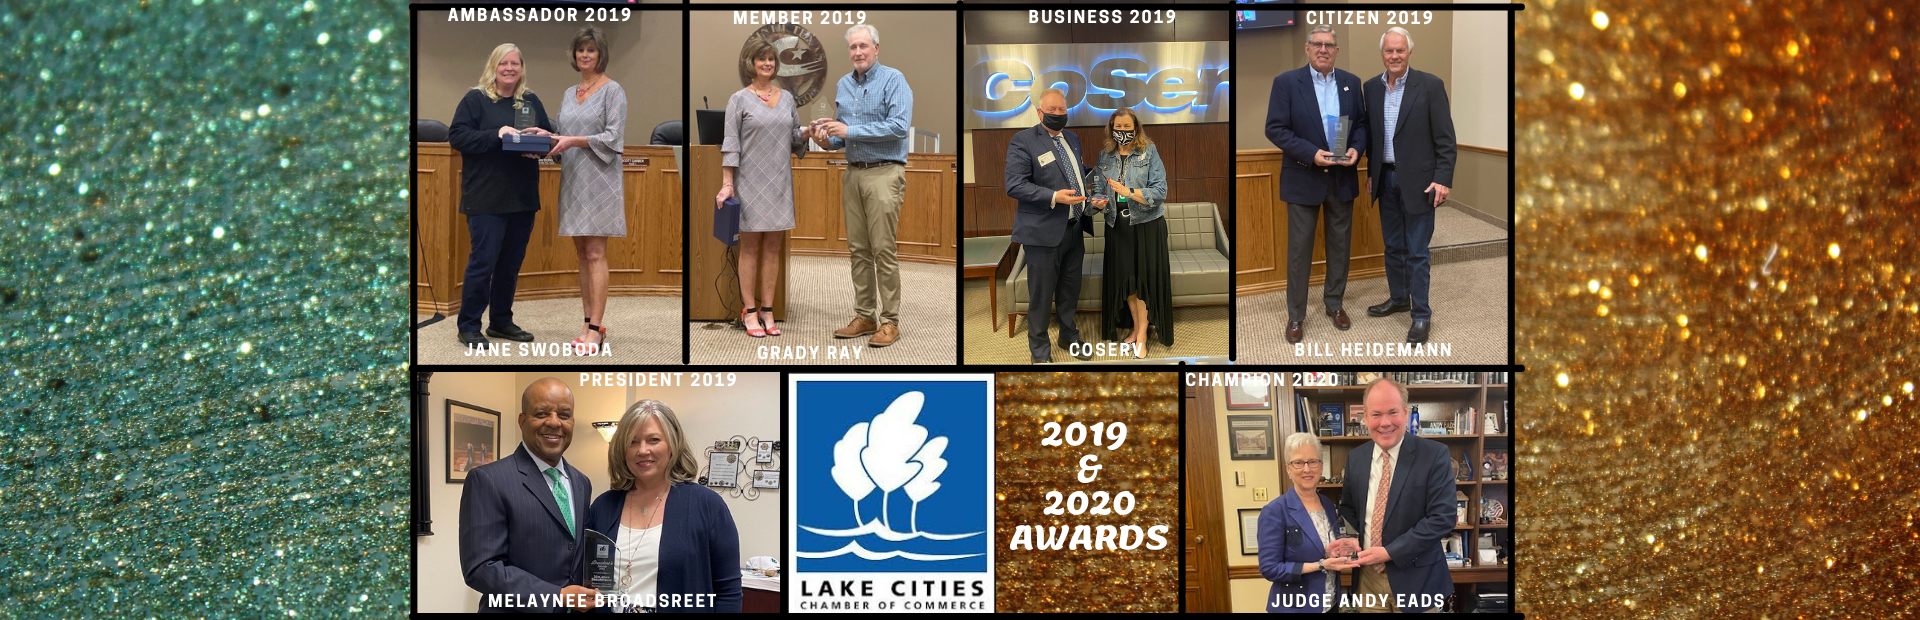 Lake Cities Chamber of Commerce | 2019 & 2020 Awards